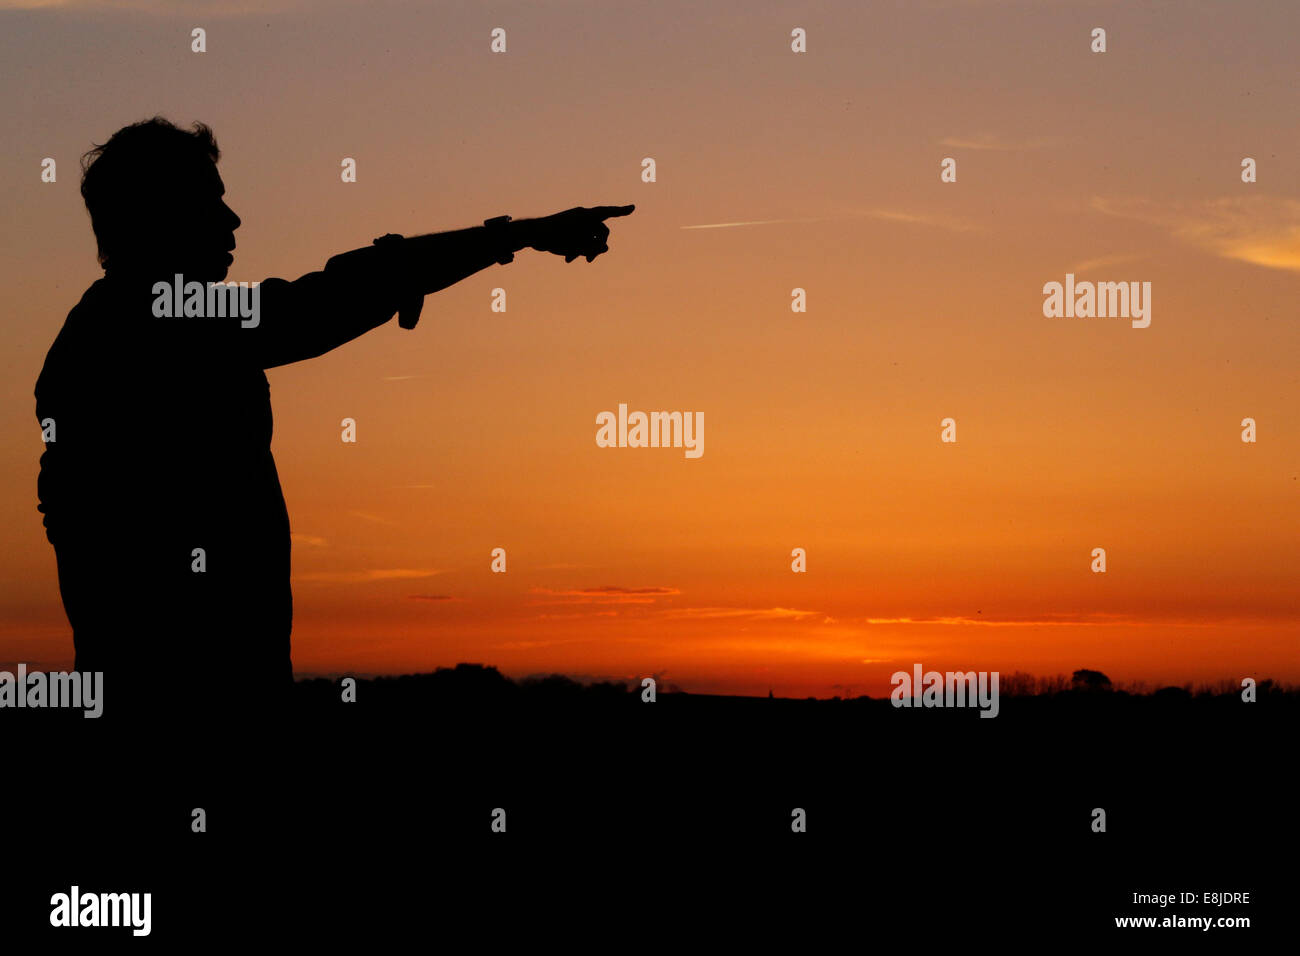 Silhouette of a man pointing to the horizon at sunset. - Stock Image